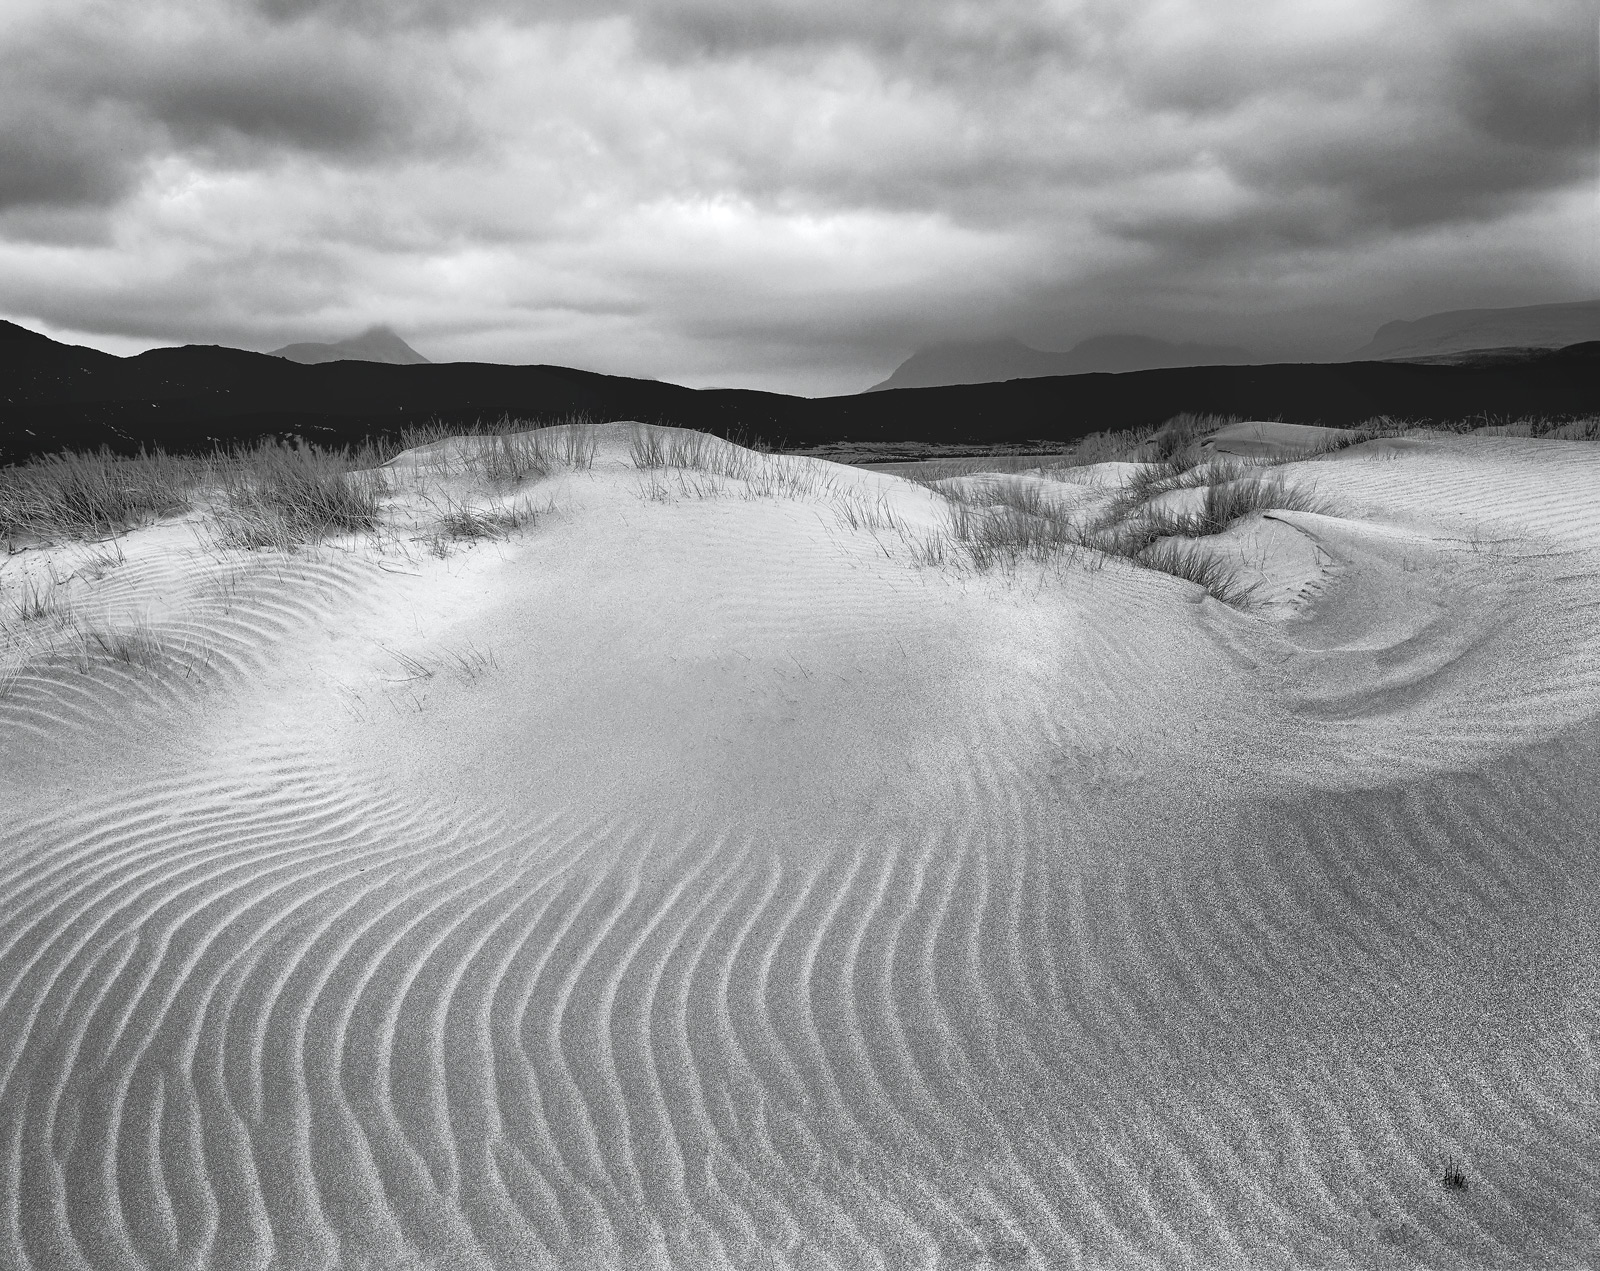 I visited the beach at Achnahaird Bay on a day of extremely high winds. The same wind had grabbed the sand off the beach...